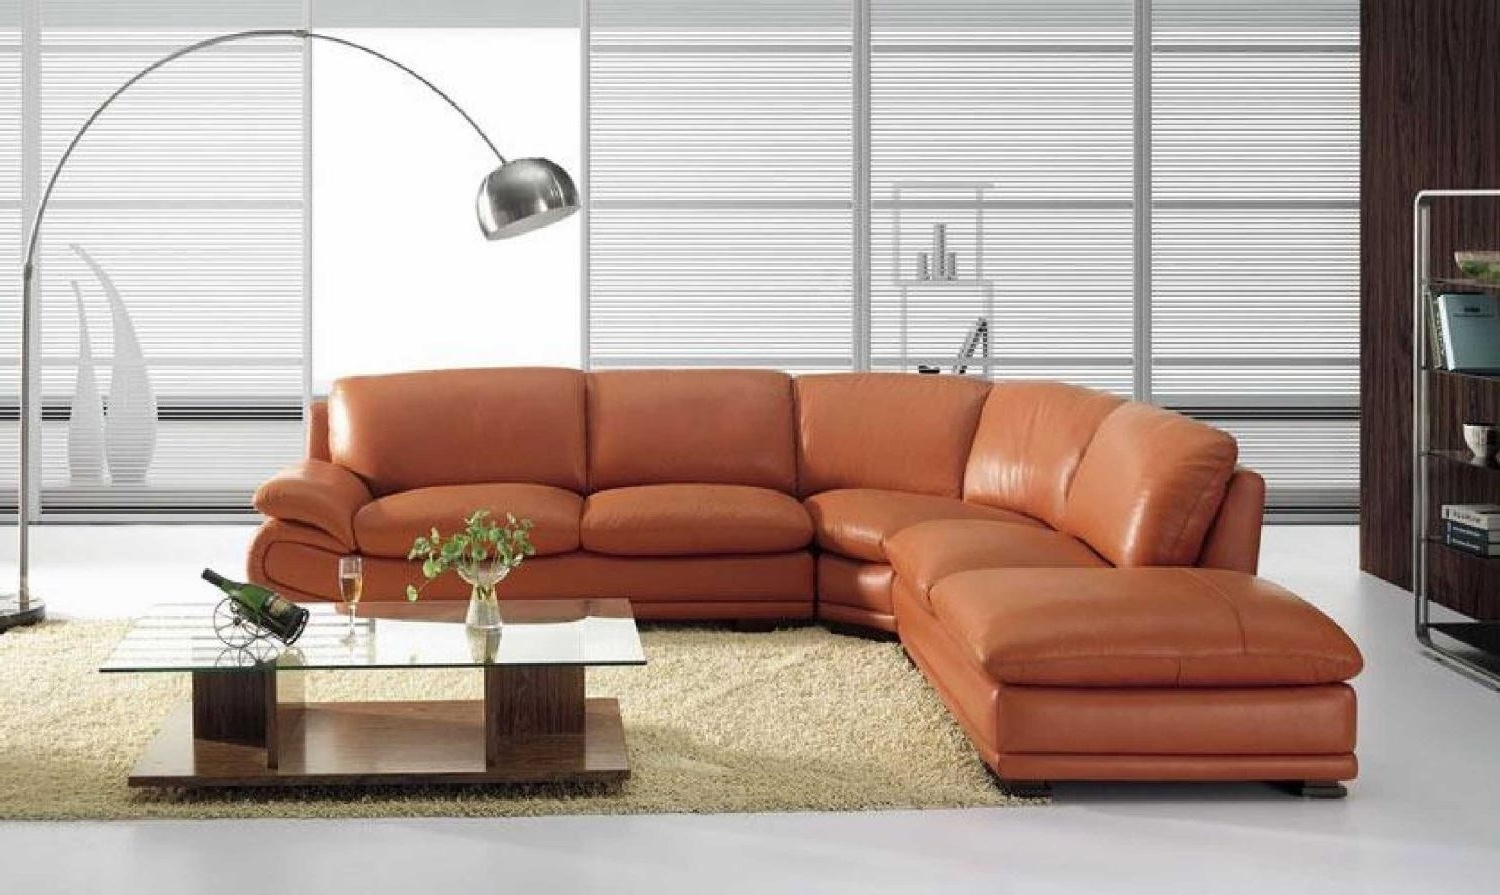 Recent Vig Furniture Bo 3920 Leather Modern Camel Sectional Sofa Intended For Camel Sectional Sofas (View 9 of 20)